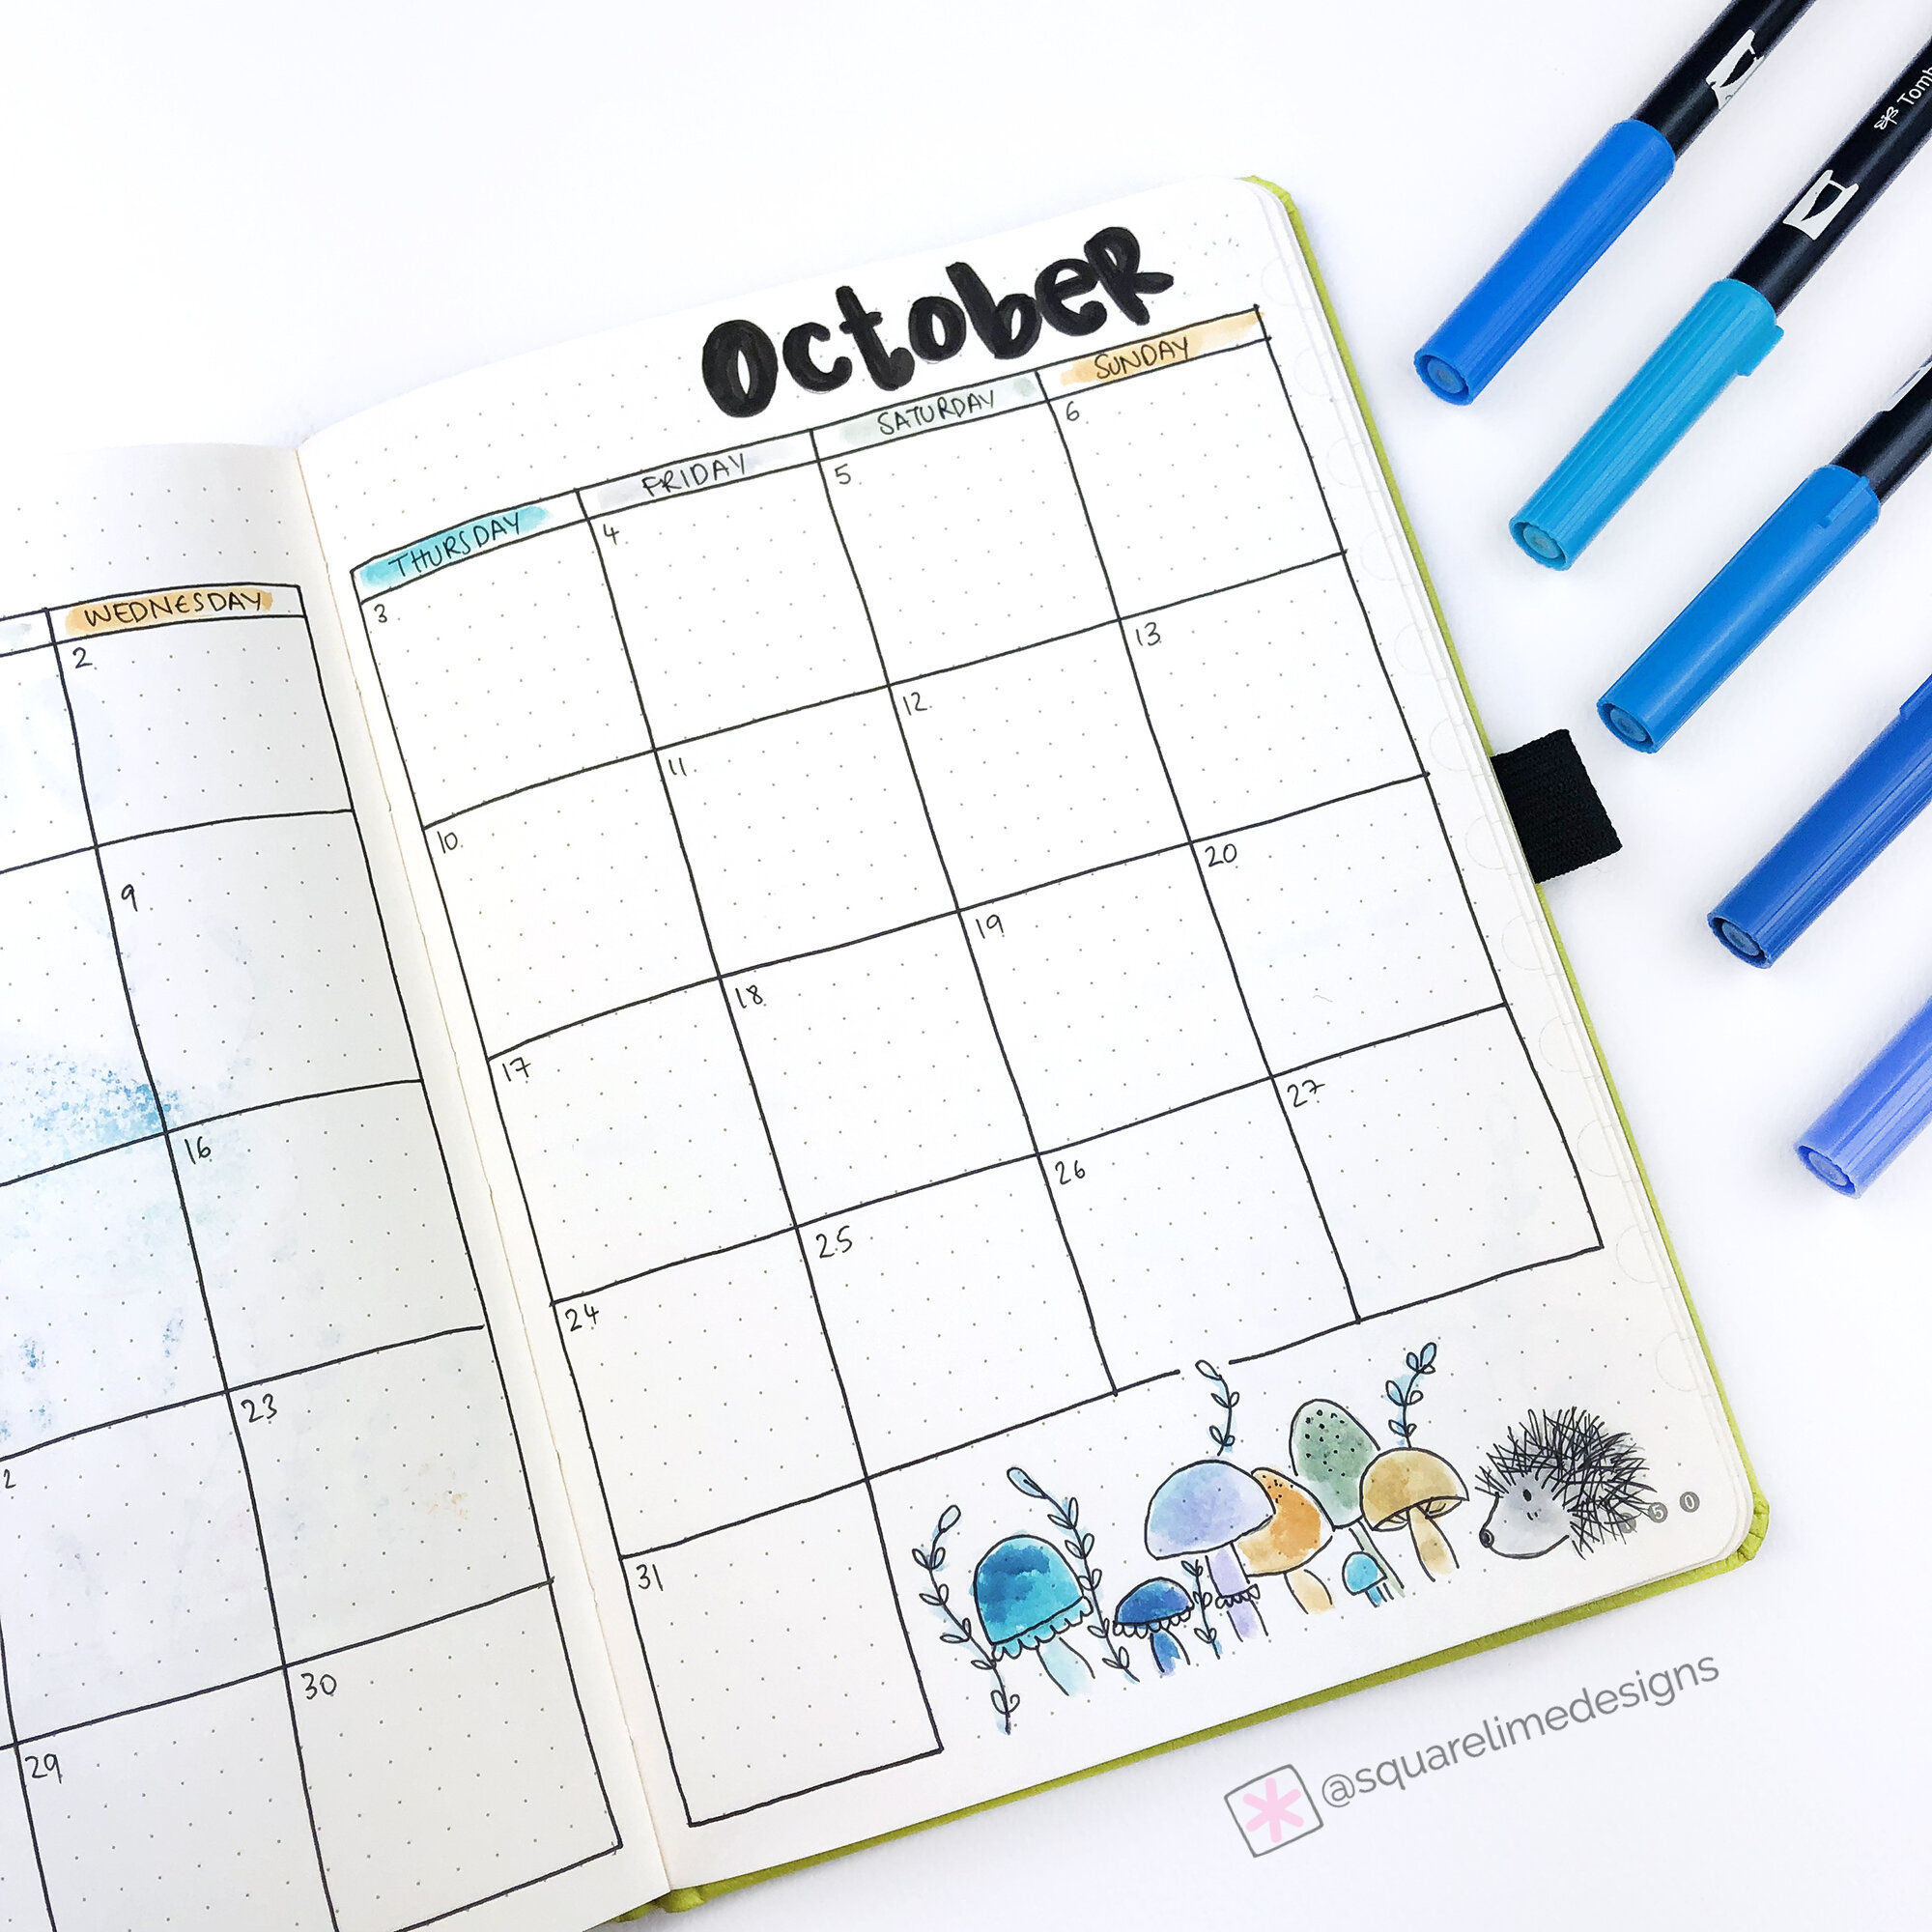 Monthly Layout - Bullet Journal - October 2019 - Square Lime Designs